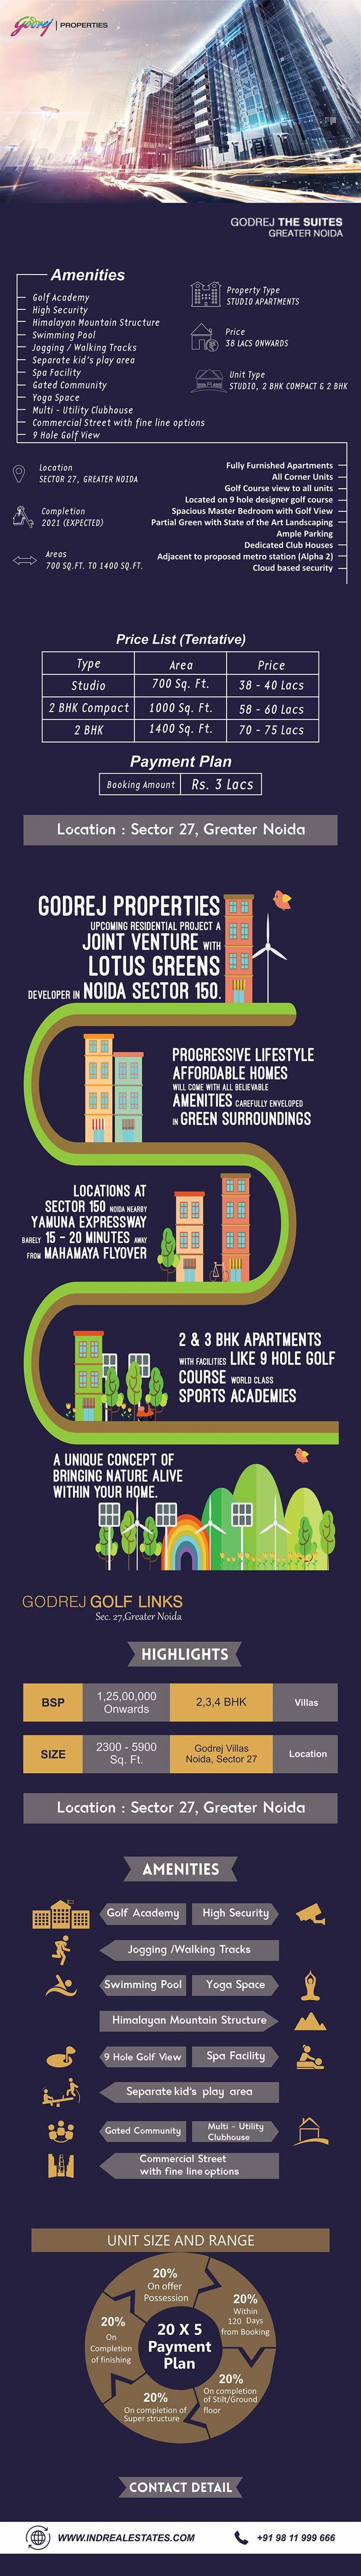 Home Buying Tips to Avoid Complications! Infographic